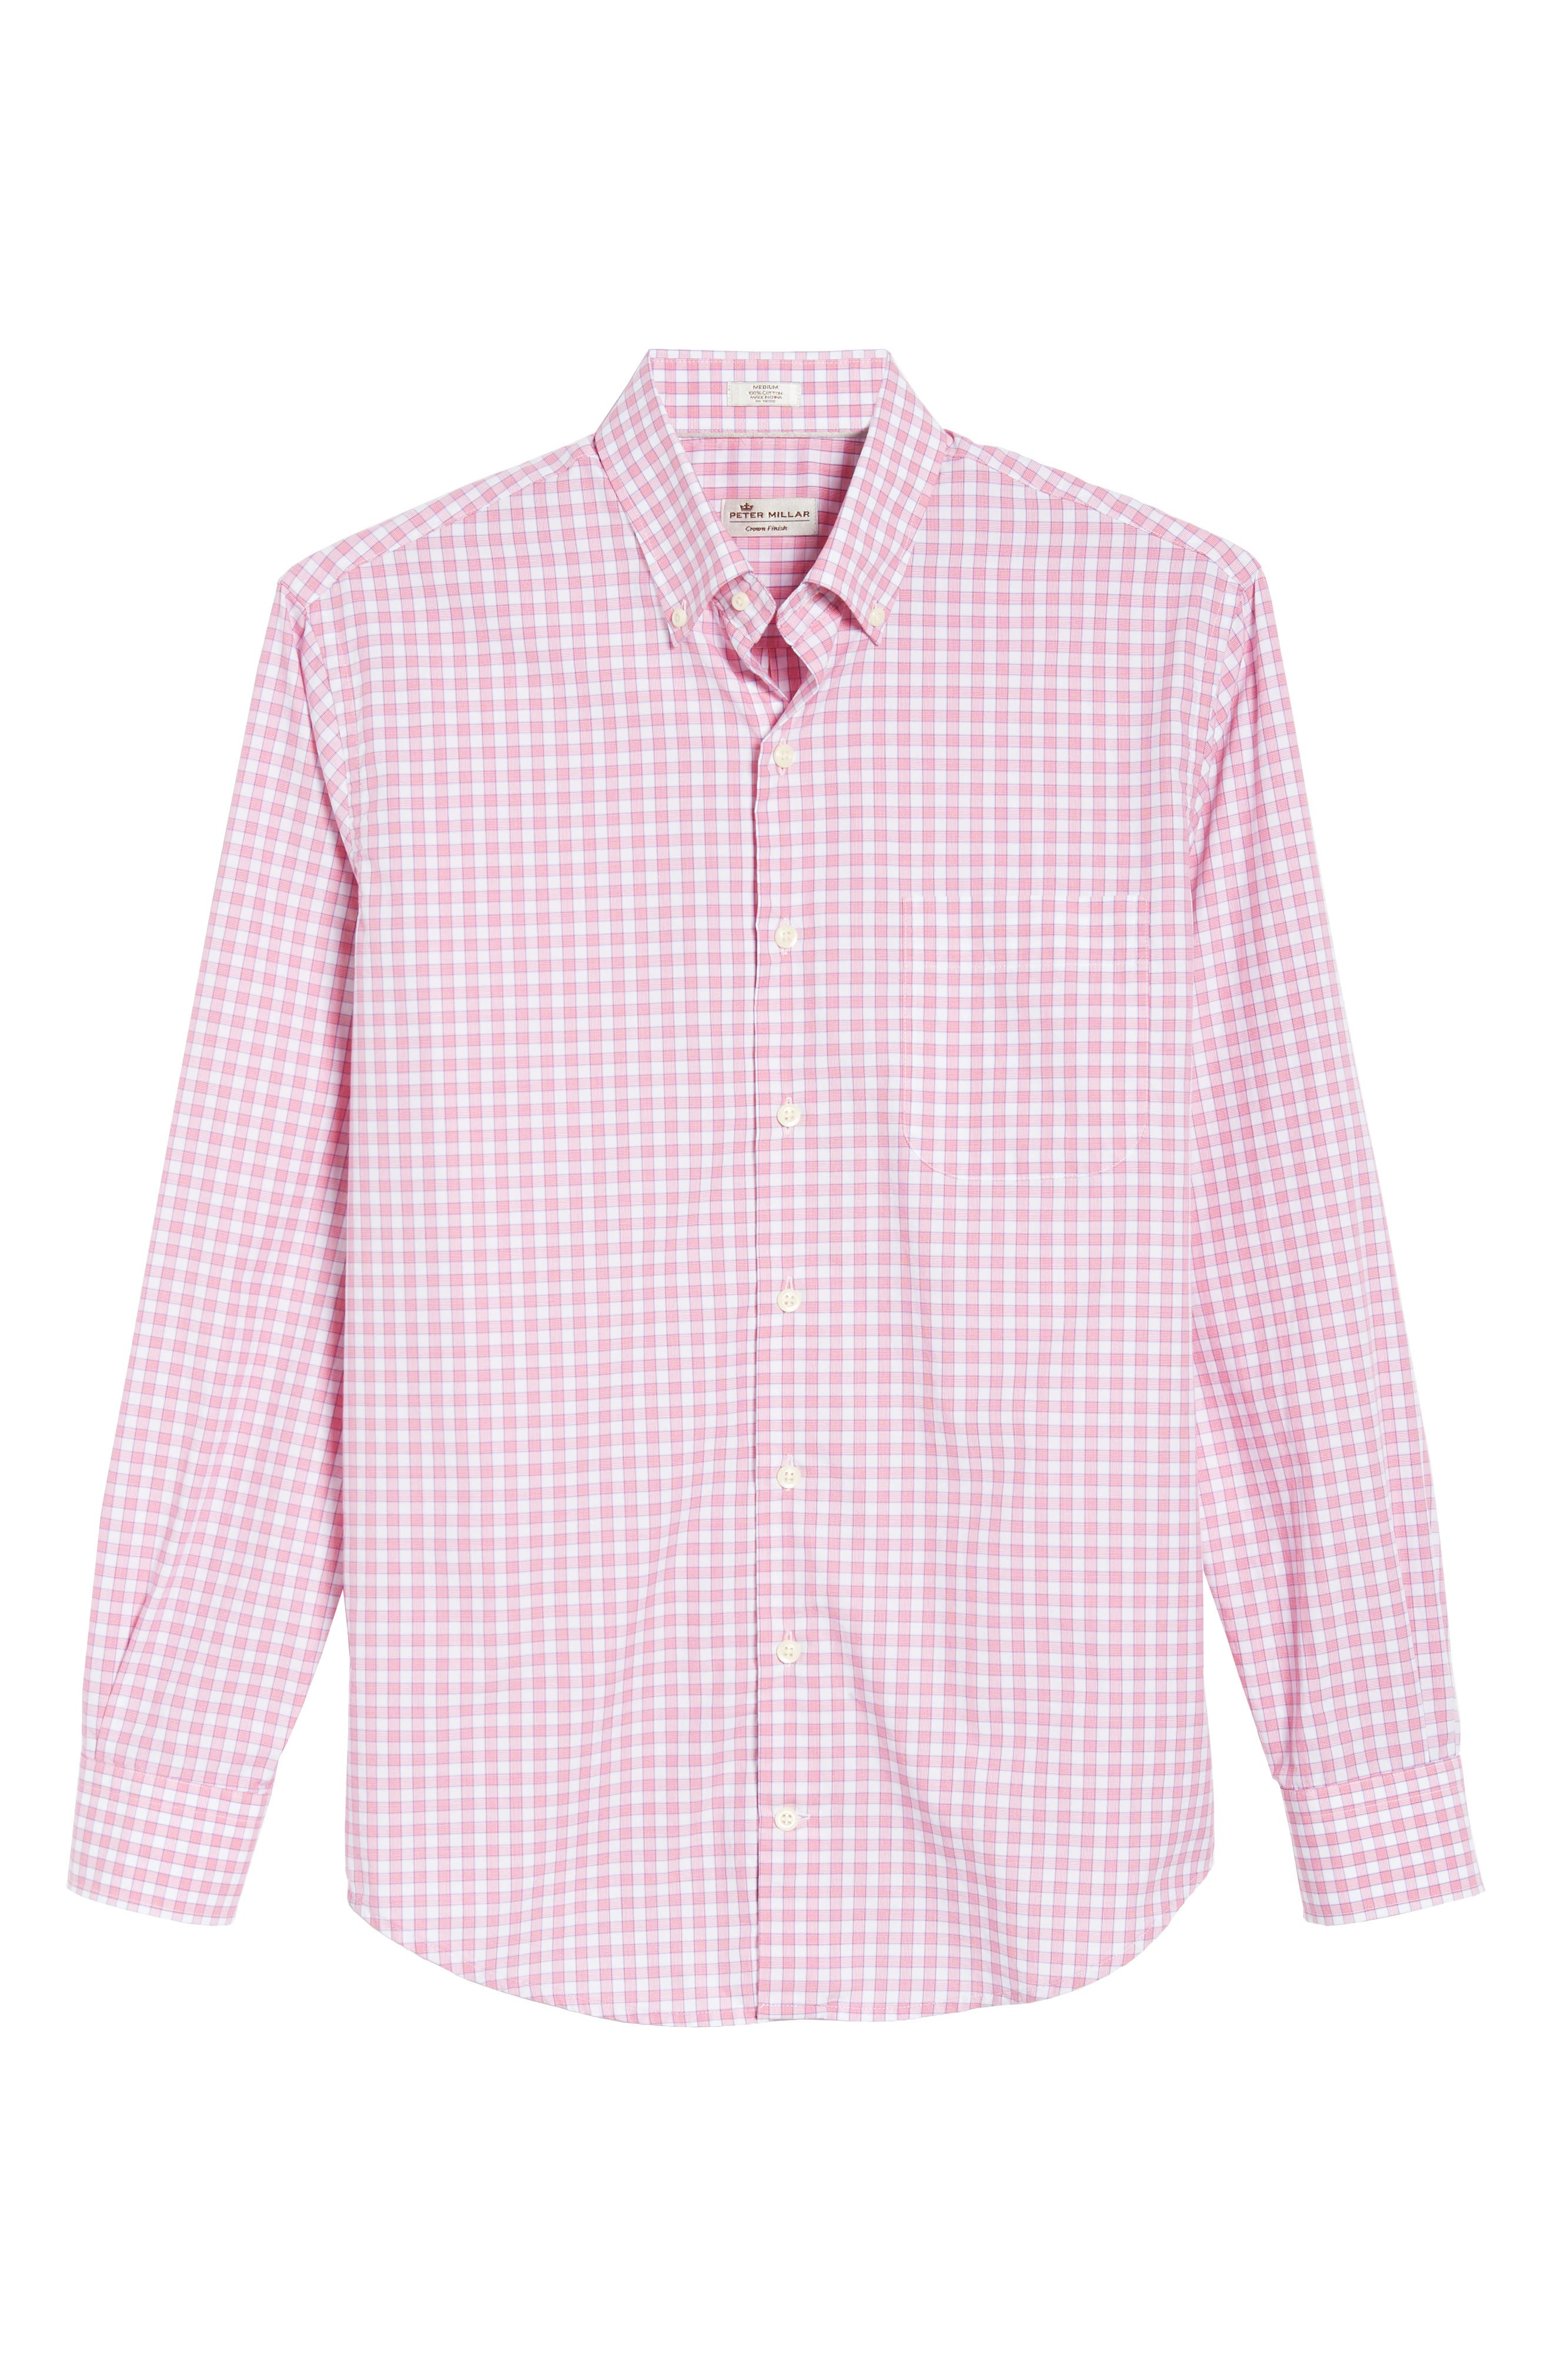 Crown Finish Marsh Regular Fit Check Sport Shirt,                             Alternate thumbnail 6, color,                             Mambo Pink